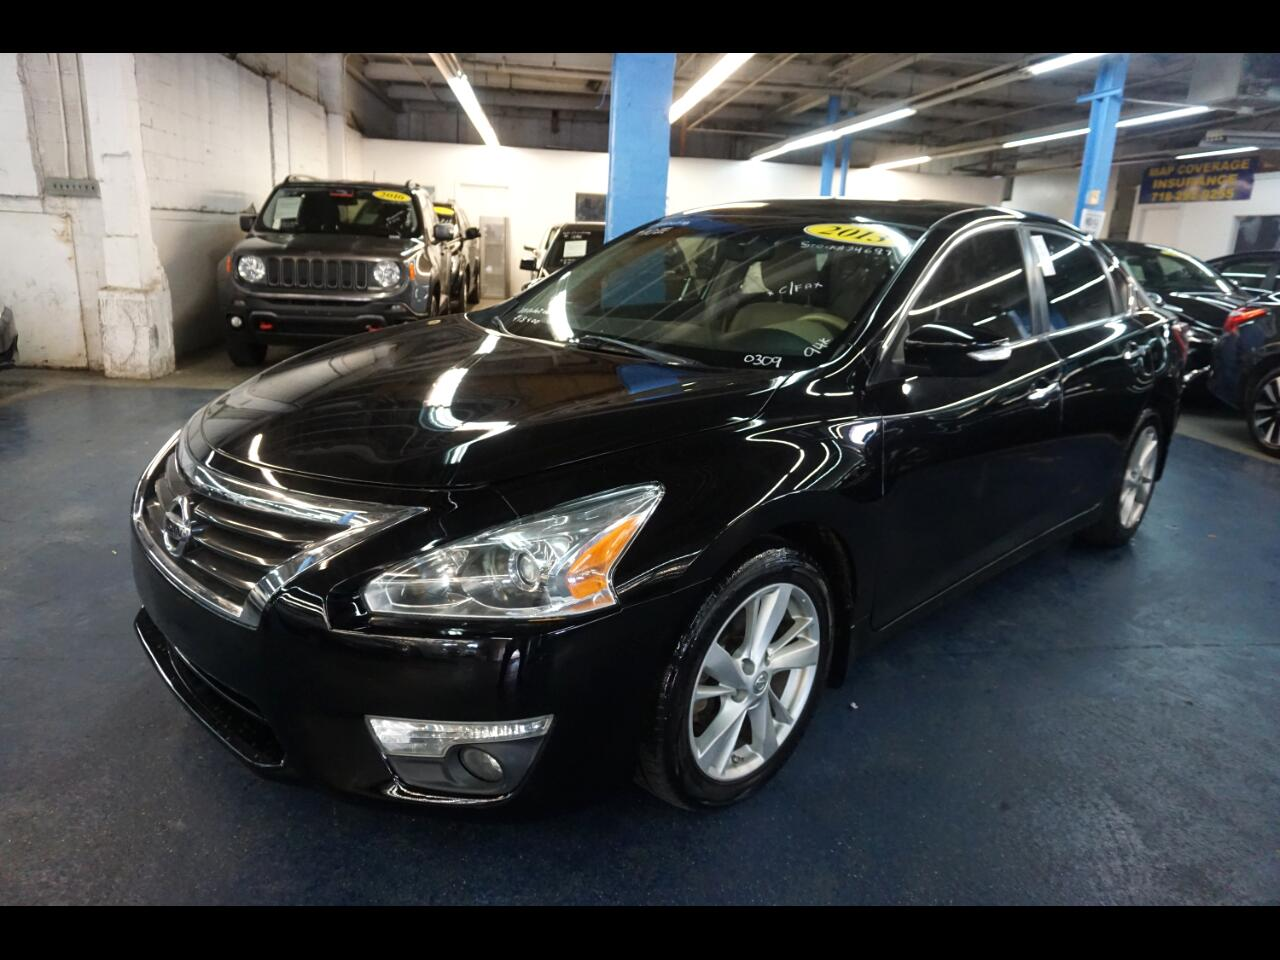 2013 Nissan Altima 4dr Sdn I4 2.5 SL *Ltd Avail*